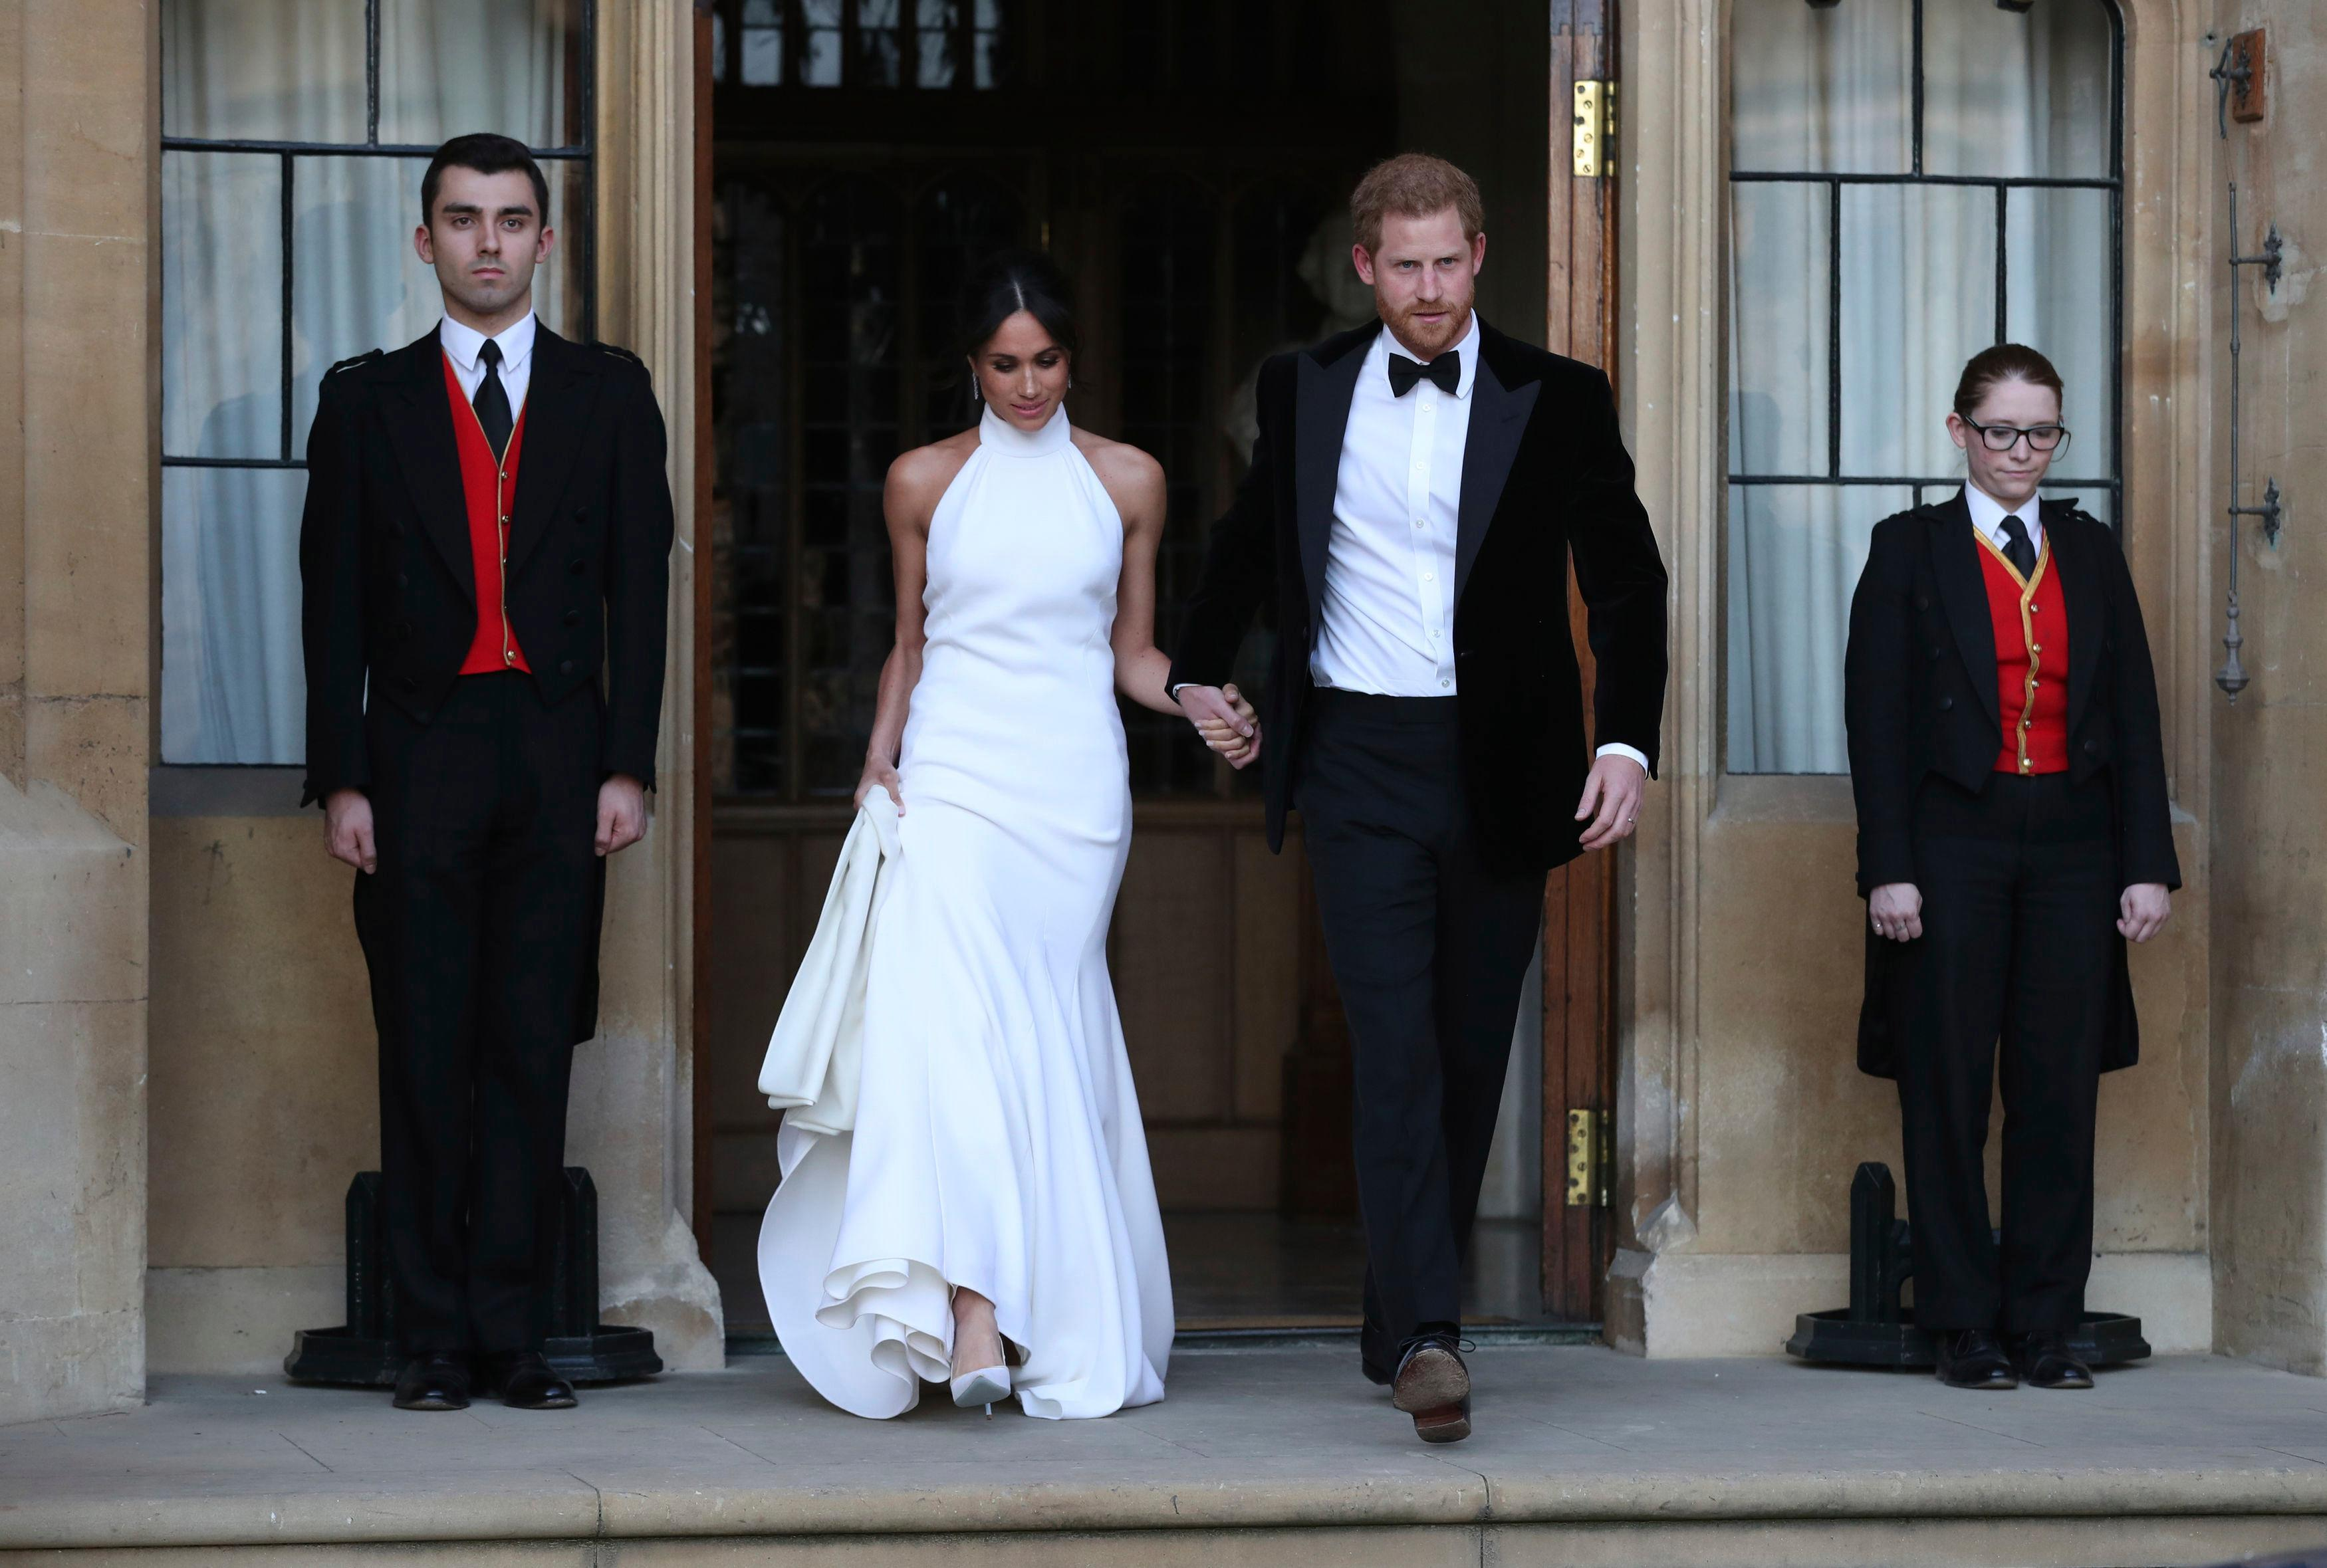 The newly married Duke and Duchess of Sussex, Meghan Markle and Prince Harry, leave Windsor Castle after their wedding in Windsor, England, to attend an evening reception at Frogmore House, hosted by the Prince of Wales, Saturday, May 19, 2018. (Steve Parsons/pool photo via AP)